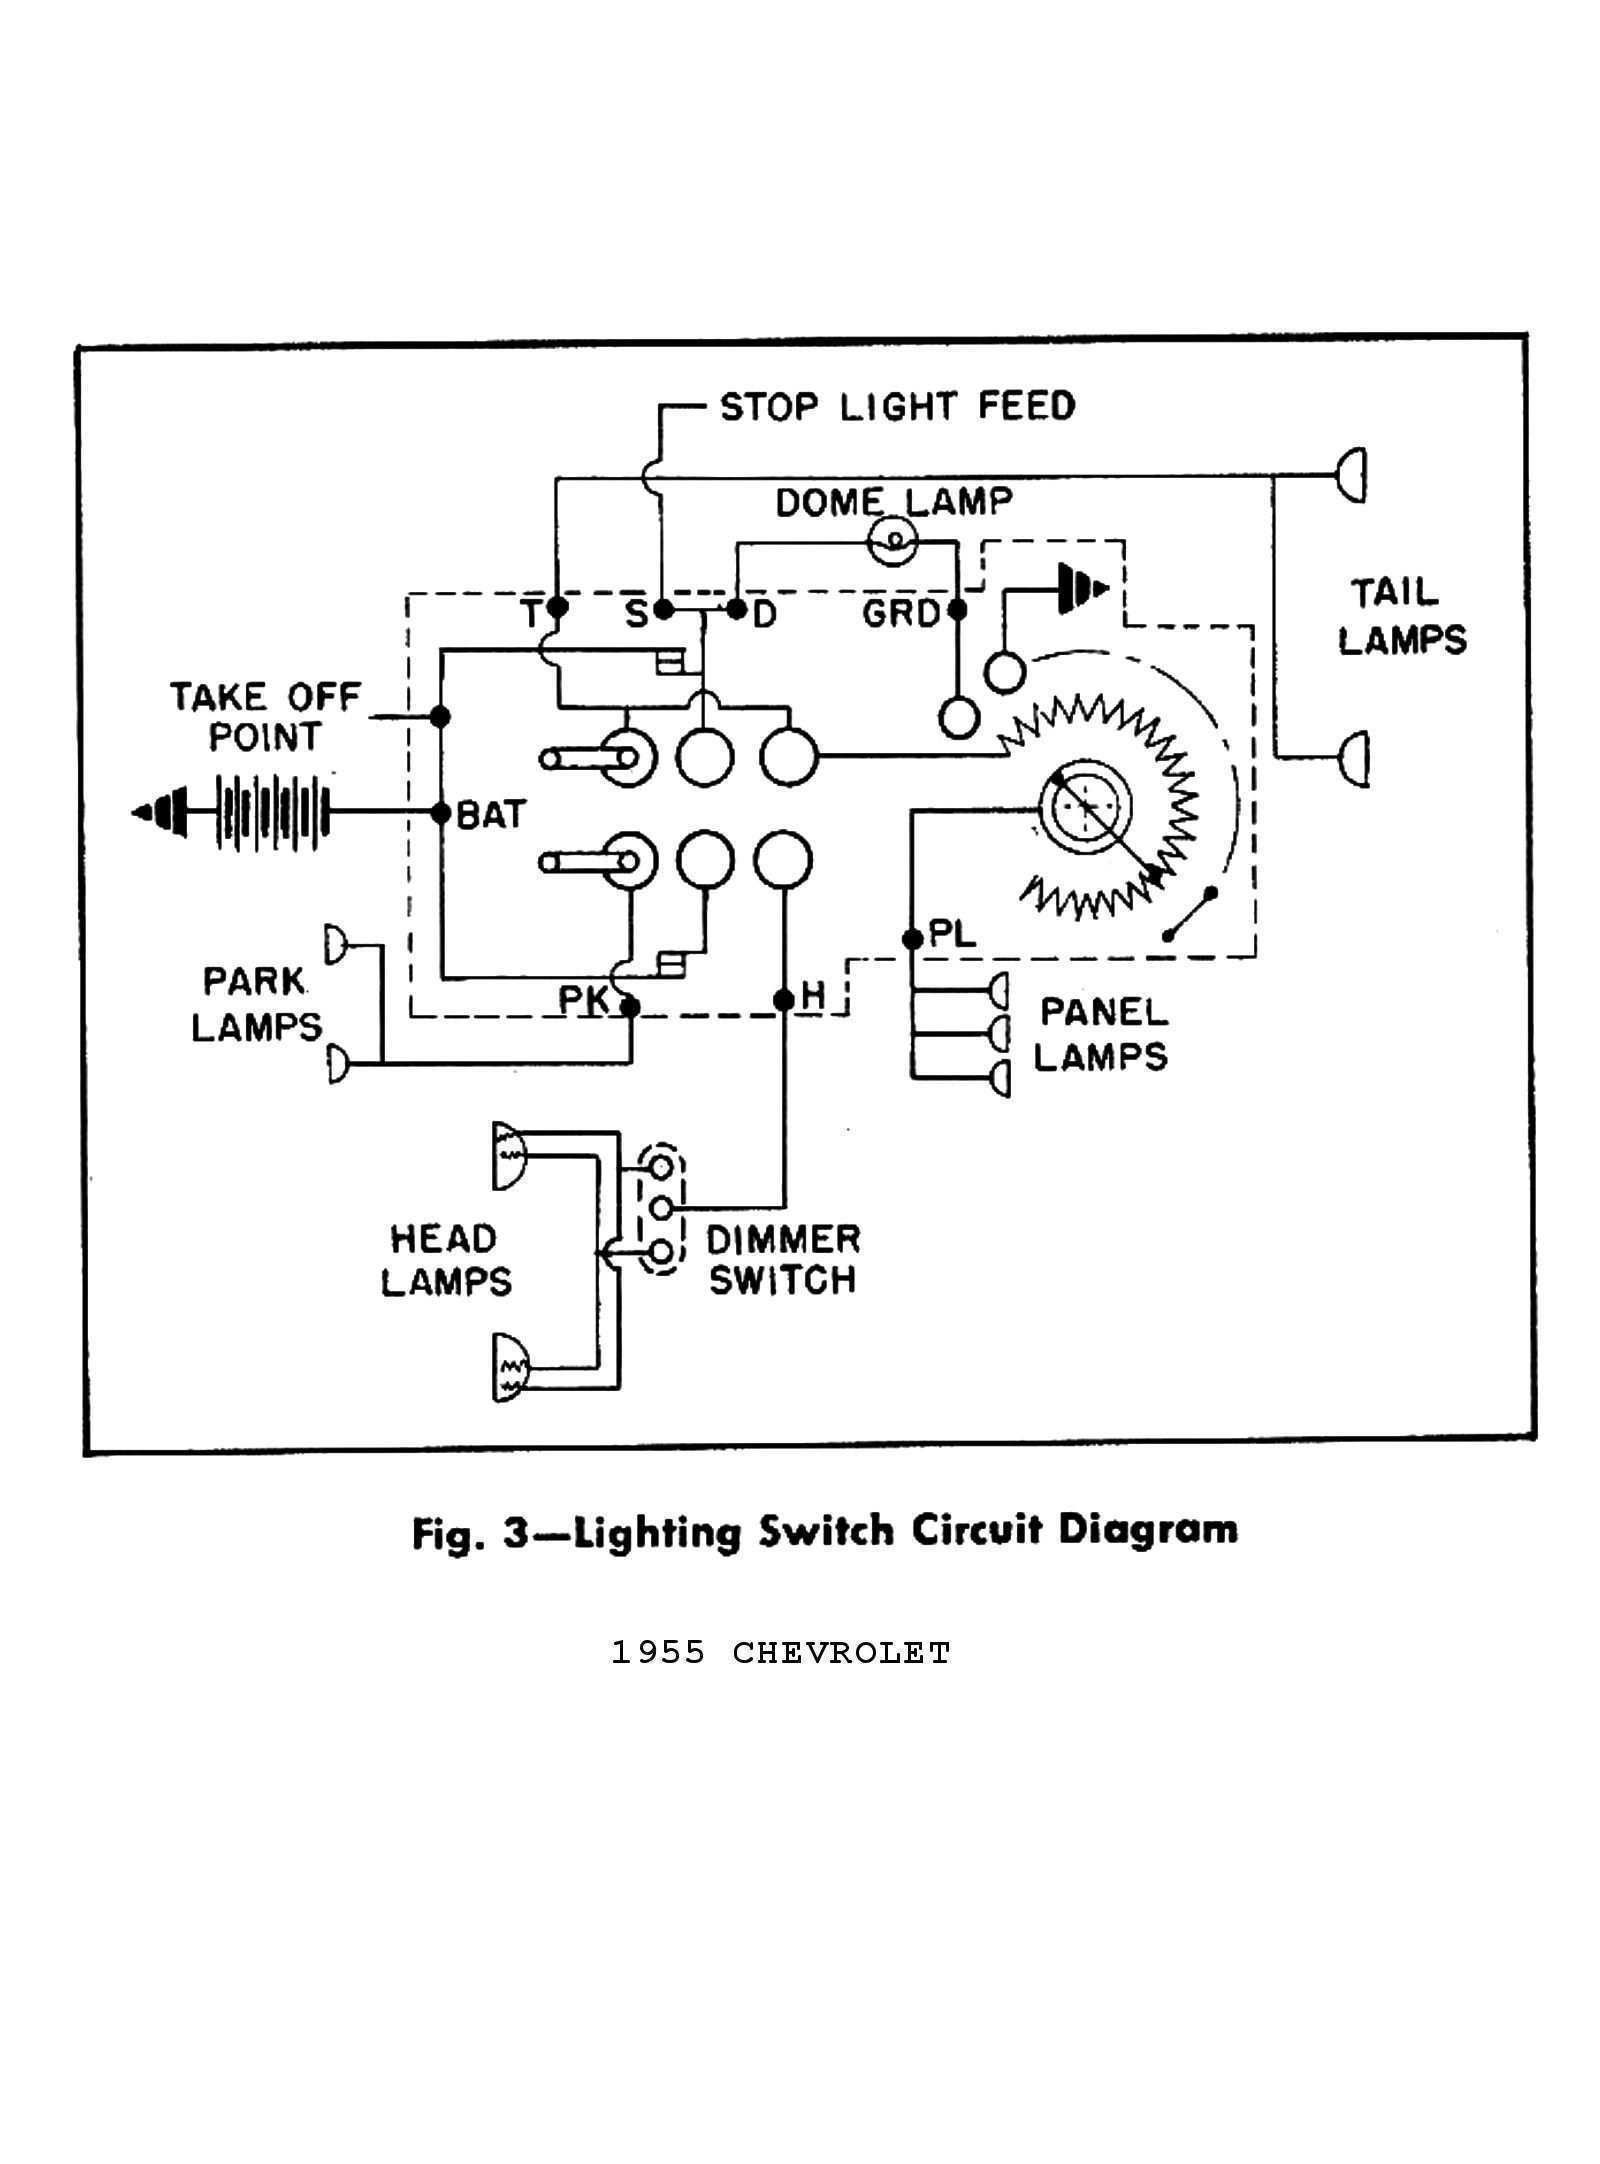 35 Ford Head Light Switch Wiring Diagram Light switch